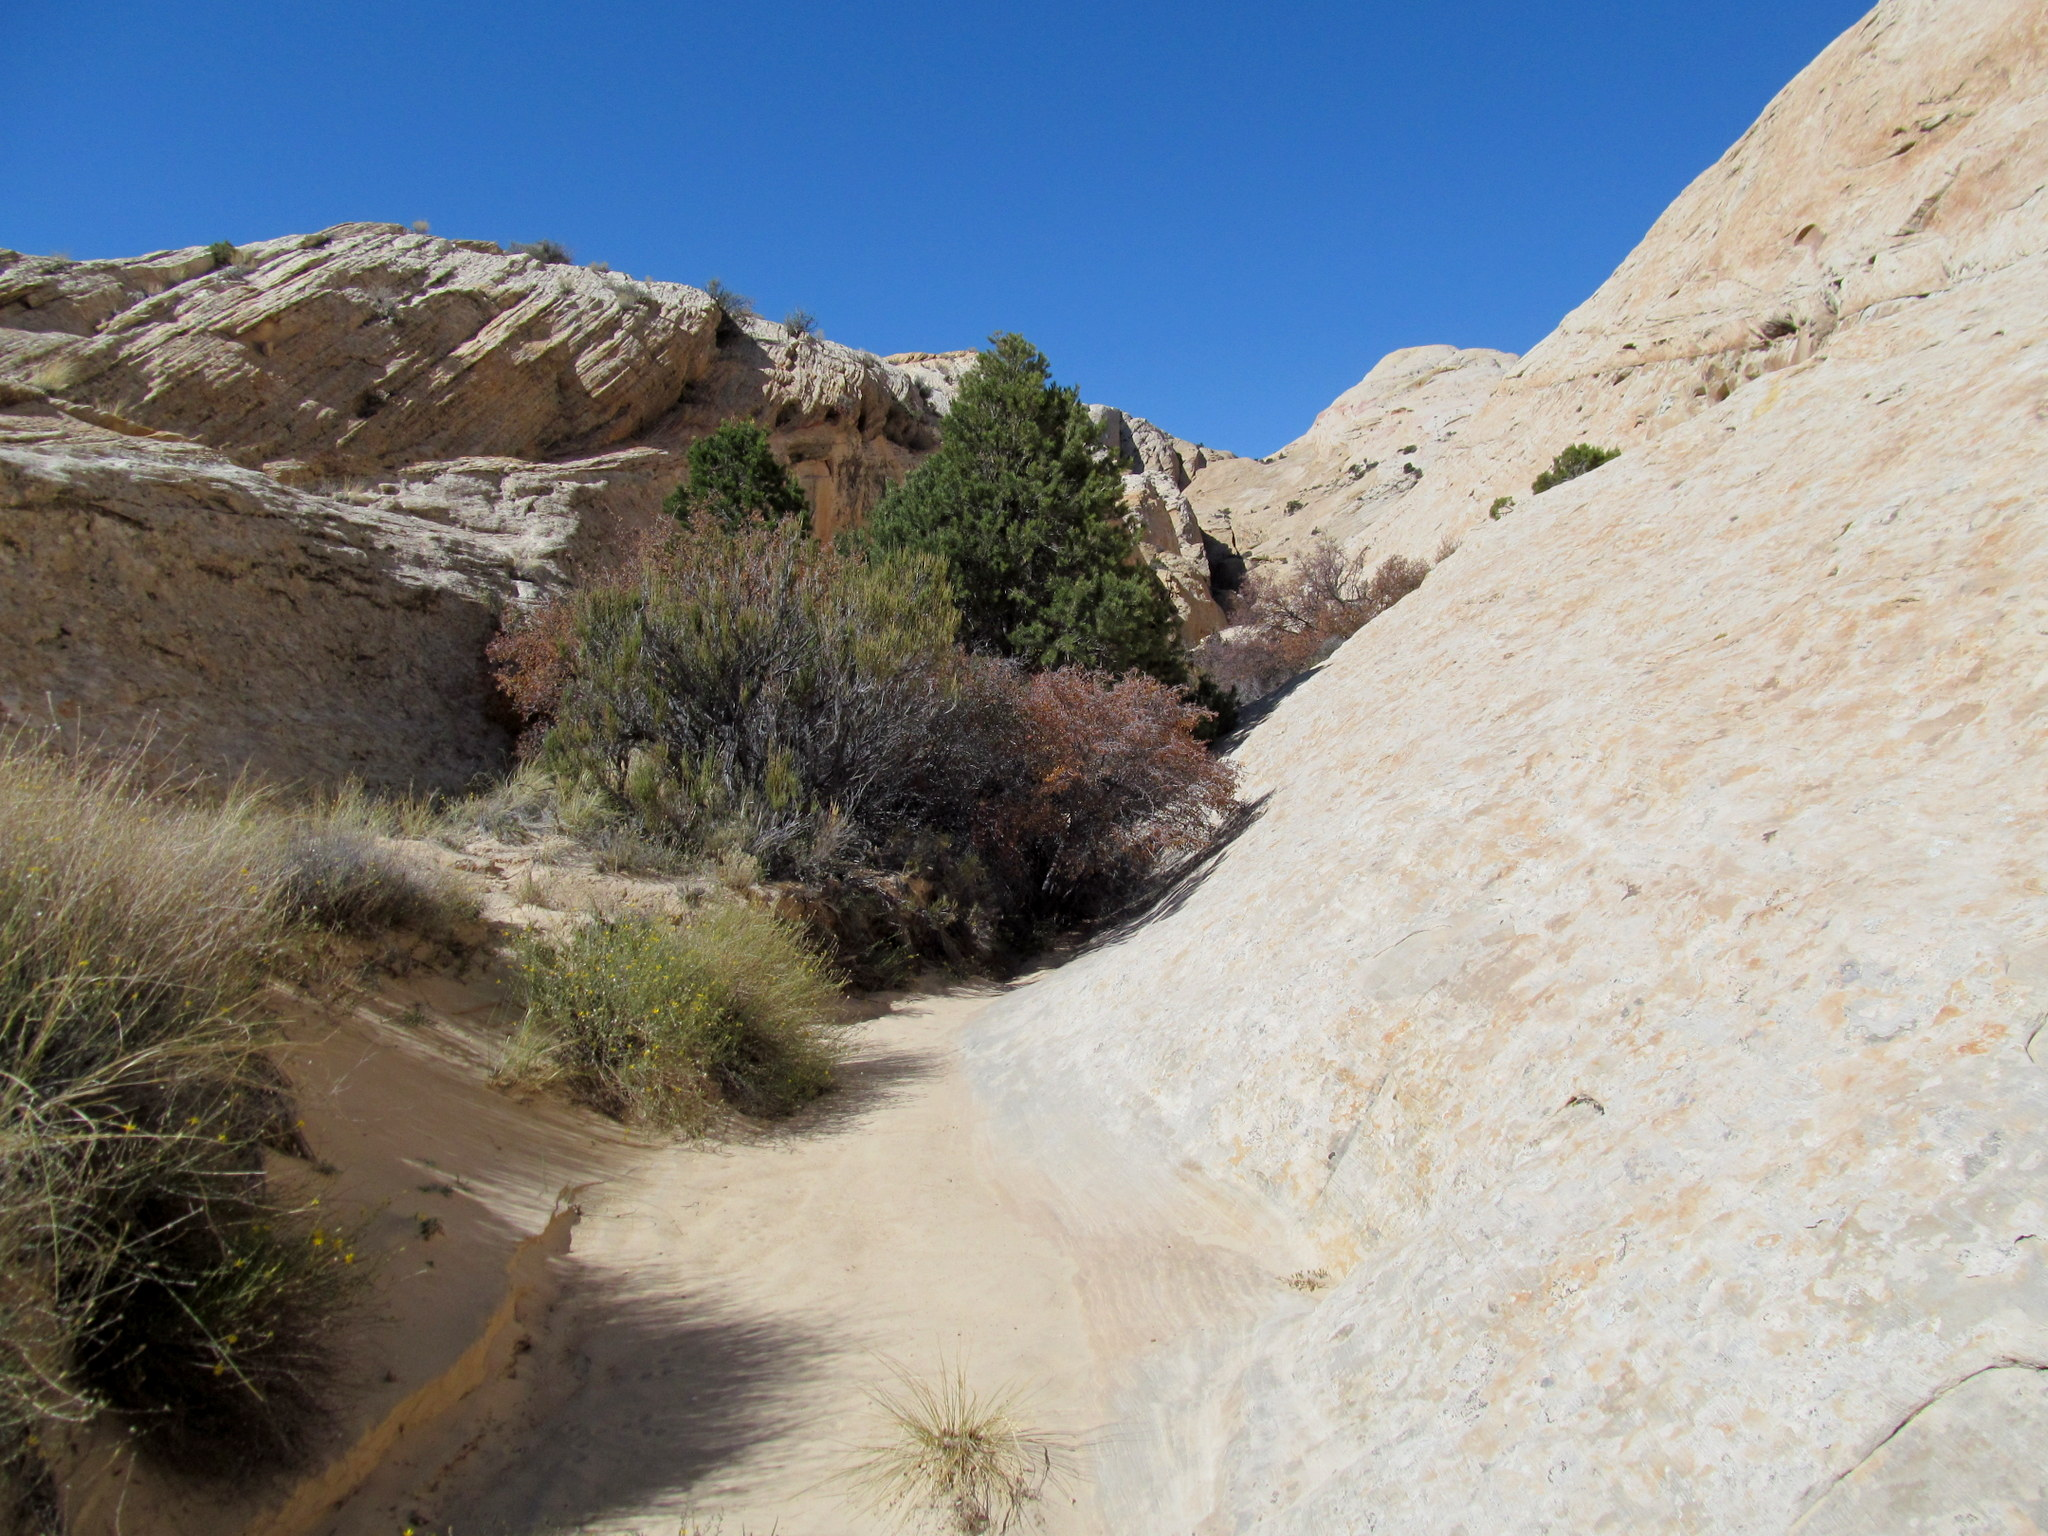 Photo: Another small canyon choked with brush and trees